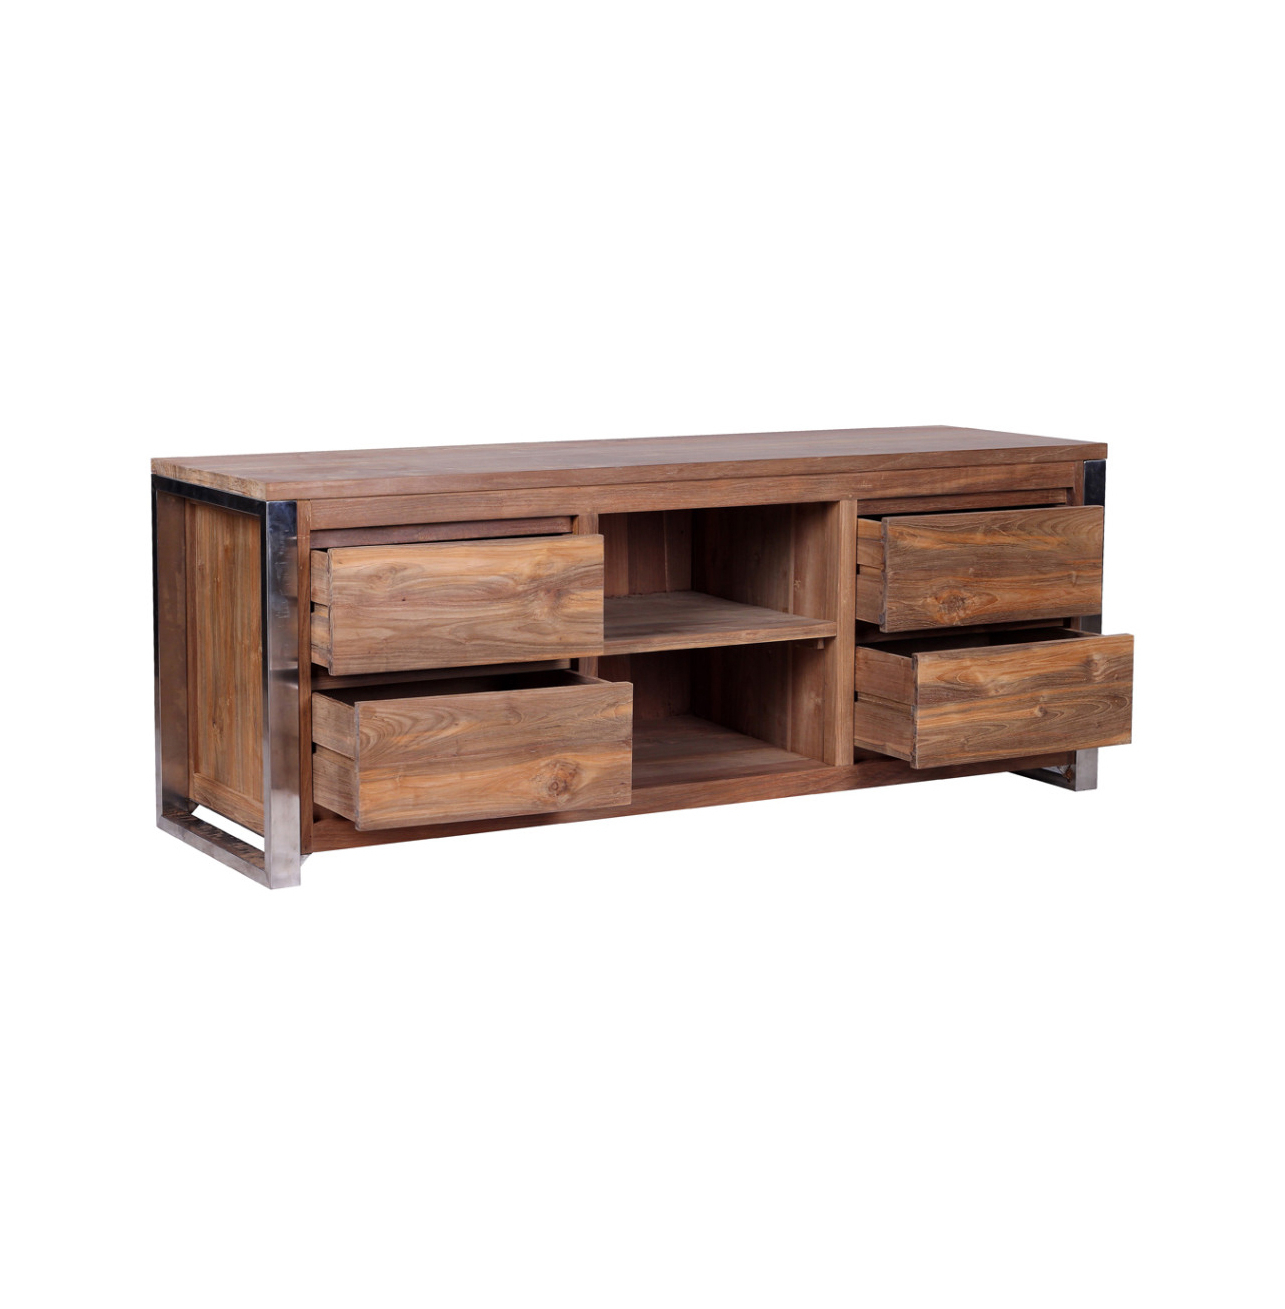 Recent Rarem Reclaimed Wood Tv Stand – Reclaimed Teak And Stainless Steel Throughout Wood And Metal Tv Stands (View 8 of 20)